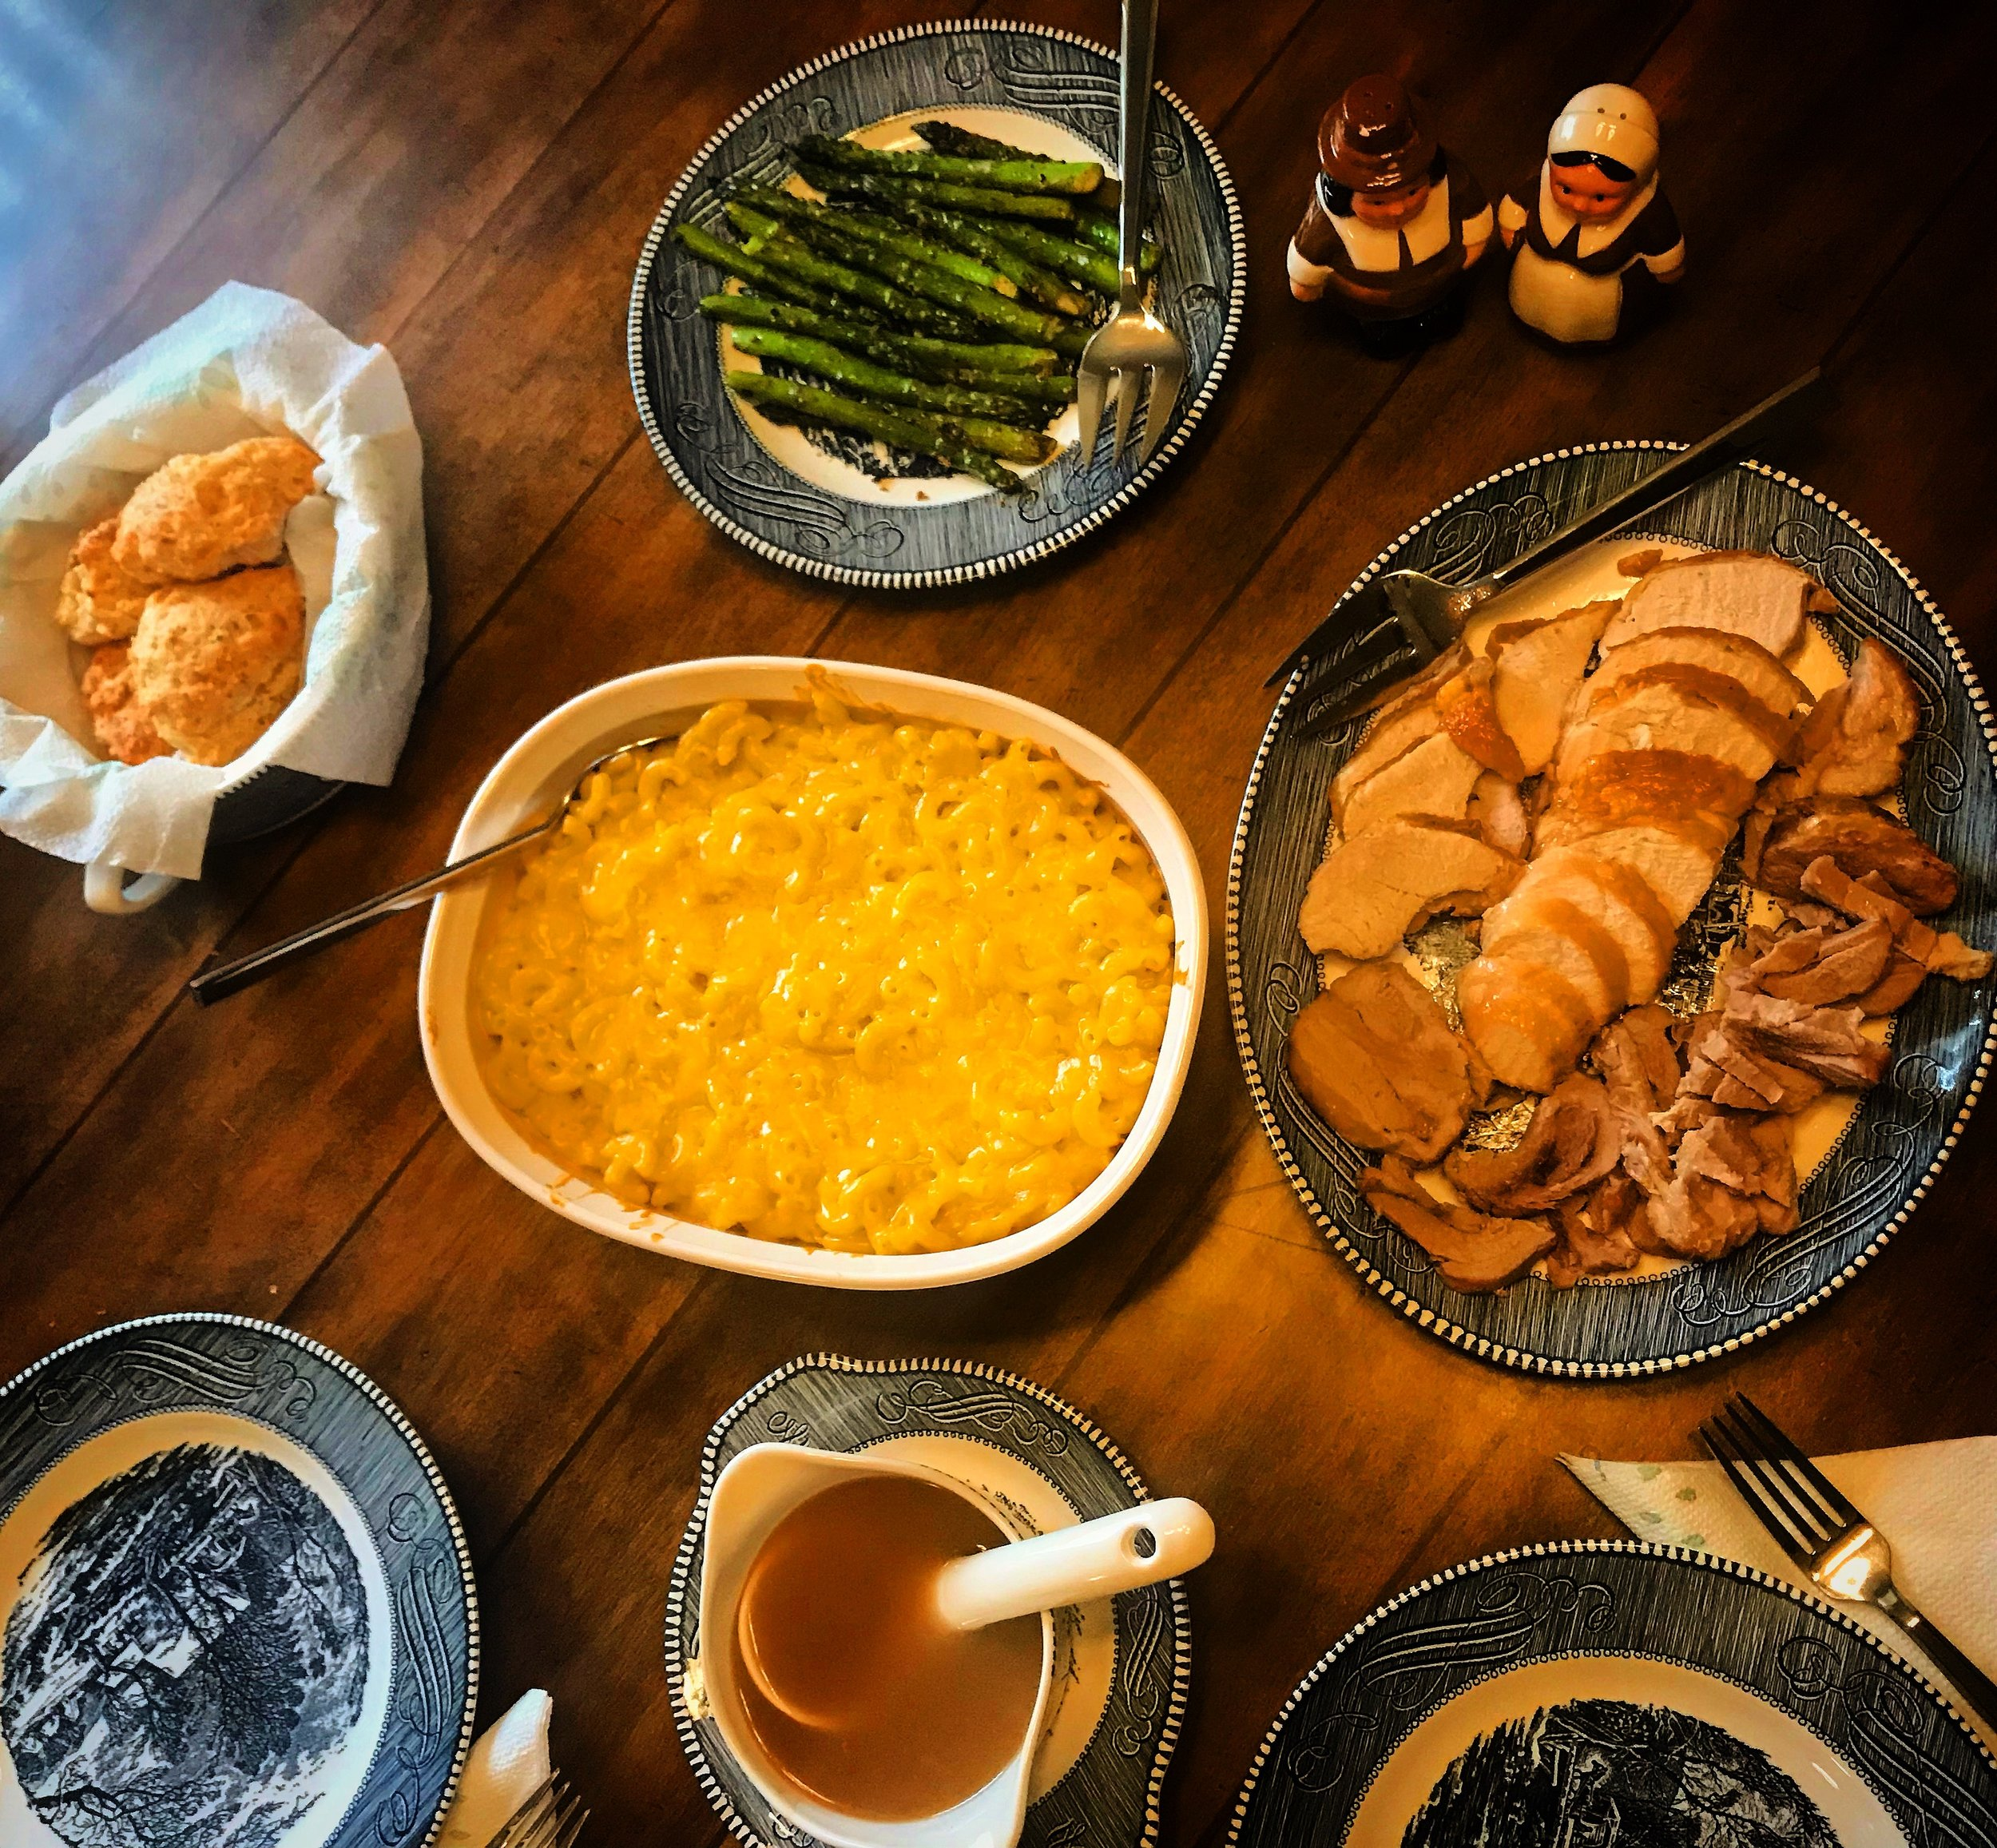 I cooked my first Thanksgiving dinner, which I really enjoyed (cooking AND eating).